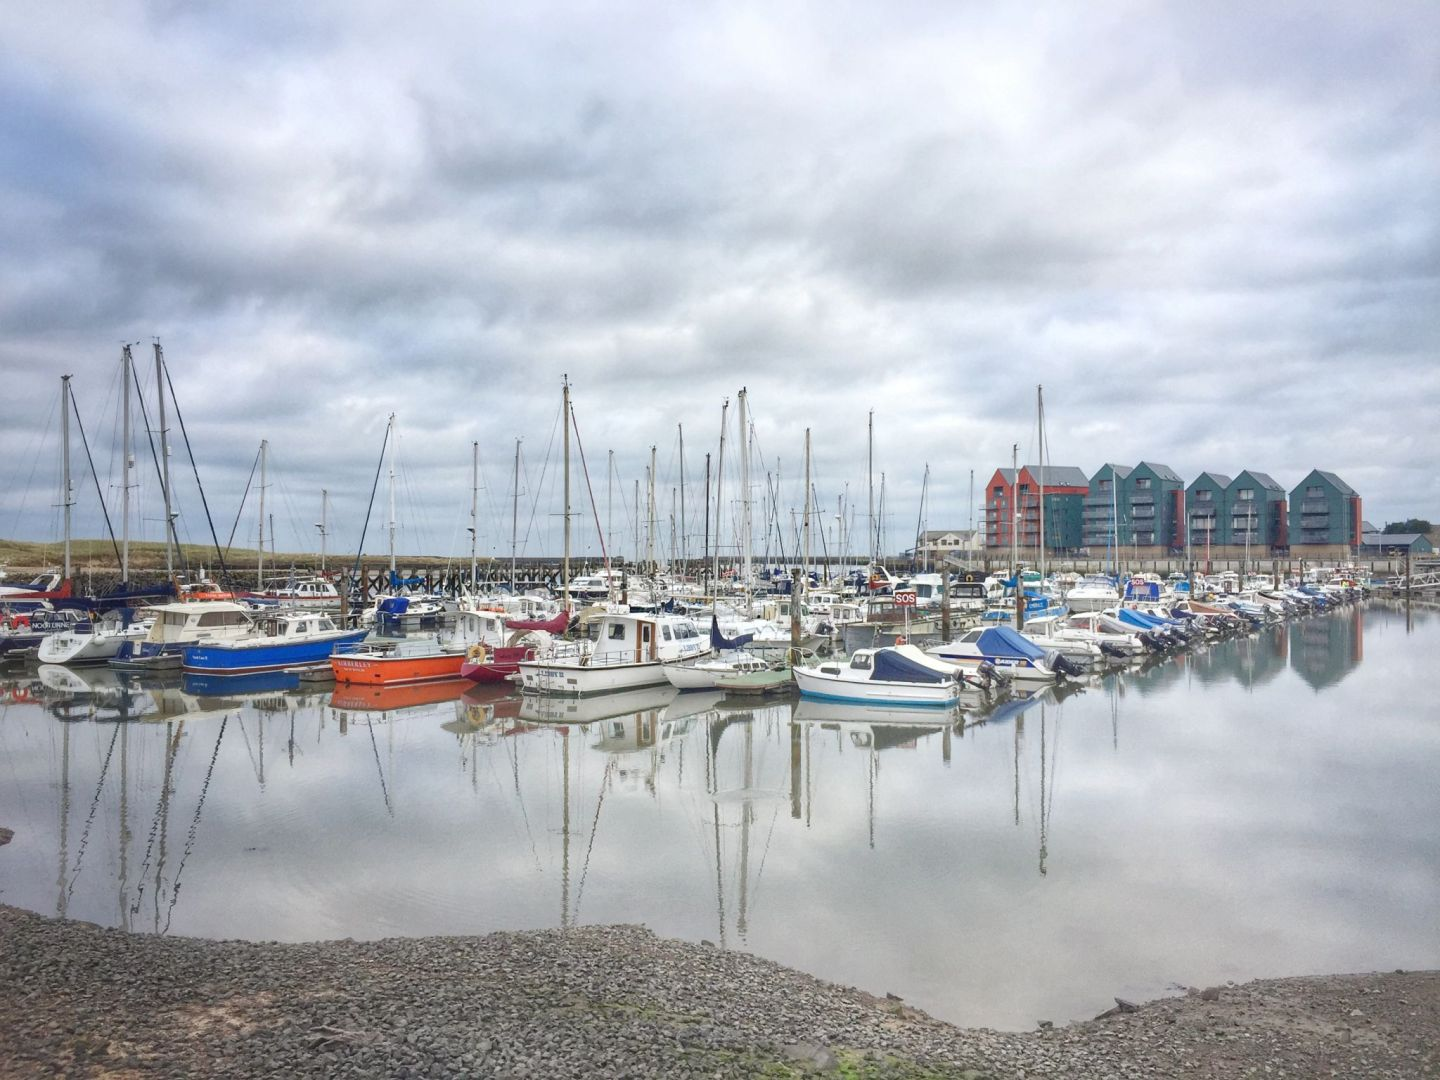 Hiking Amble to Alnmouth. Amble marina. Reflections of boats in the water